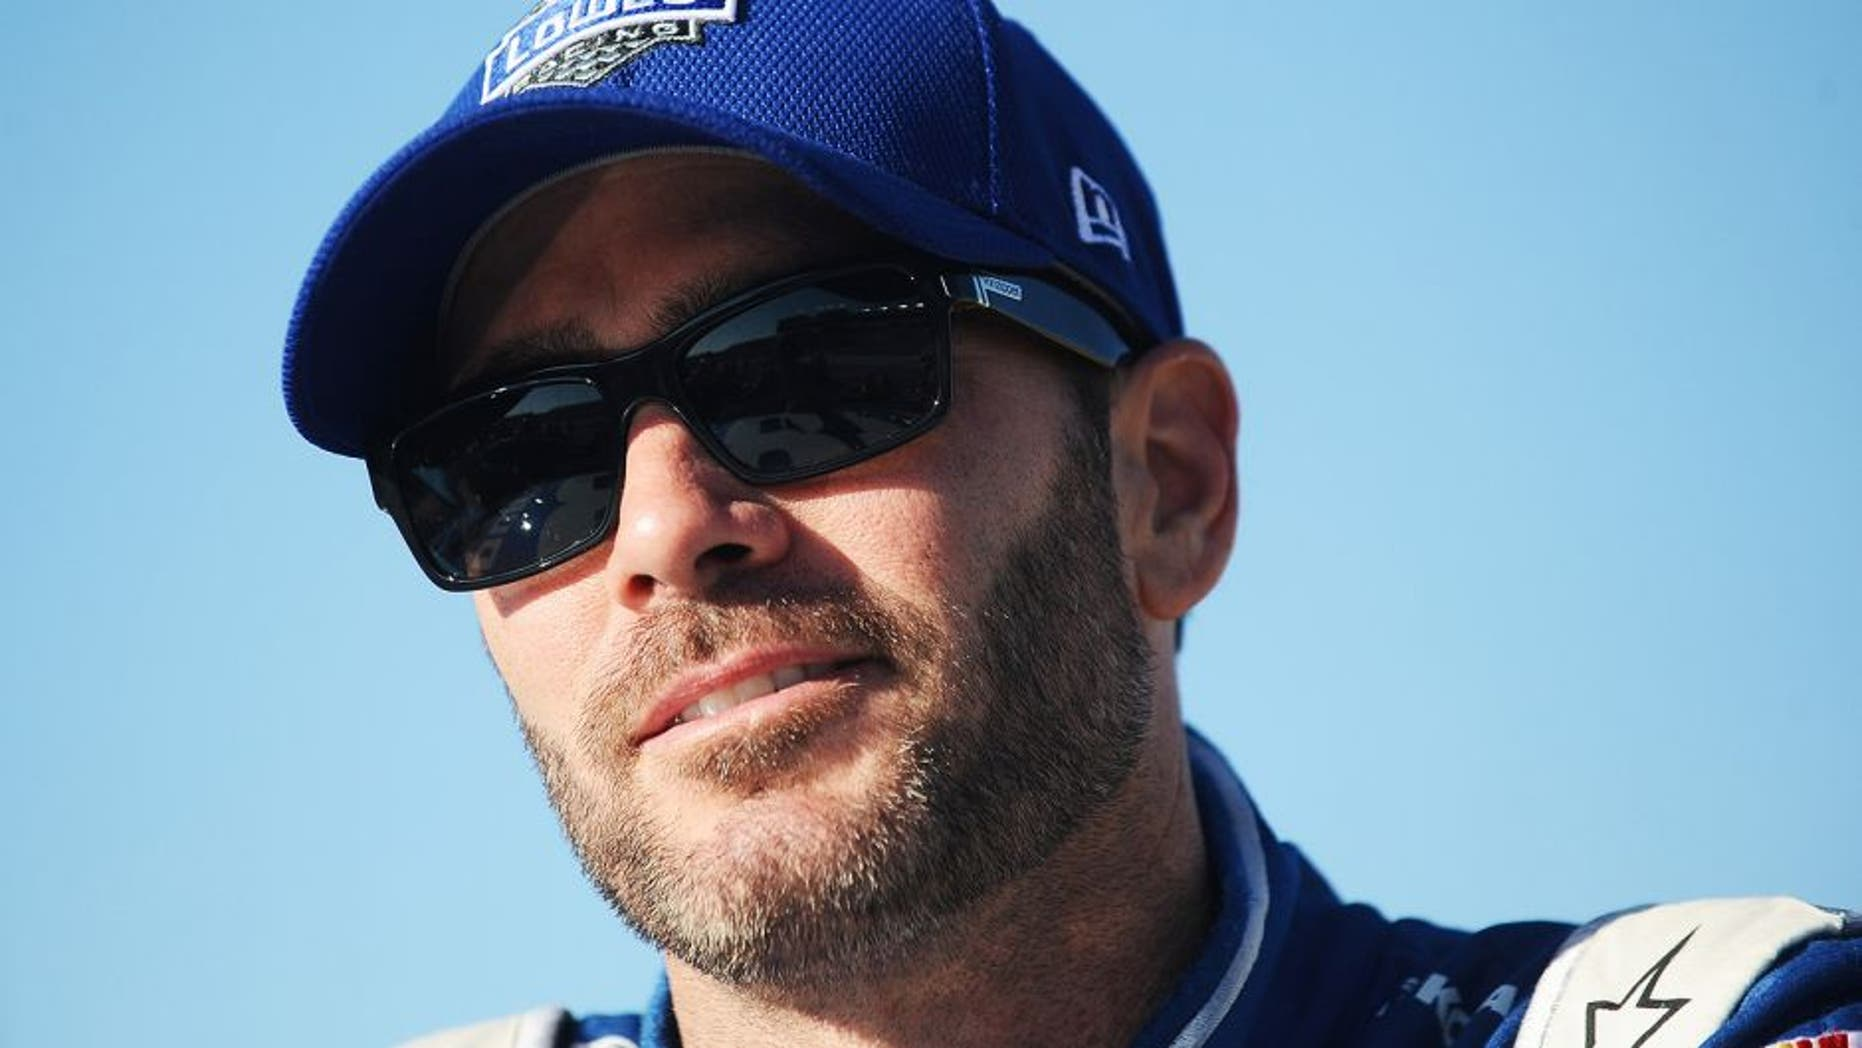 RICHMOND, VA - SEPTEMBER 11: Jimmie Johnson, driver of the #48 Lowe's Chevrolet, stands on the grid during qualifying for the NASCAR Sprint Cup Series Federated Auto Parts 400 at Richmond International Raceway on September 11, 2015 in Richmond, Virginia. (Photo by Rainier Ehrhardt/NASCAR via Getty Images)